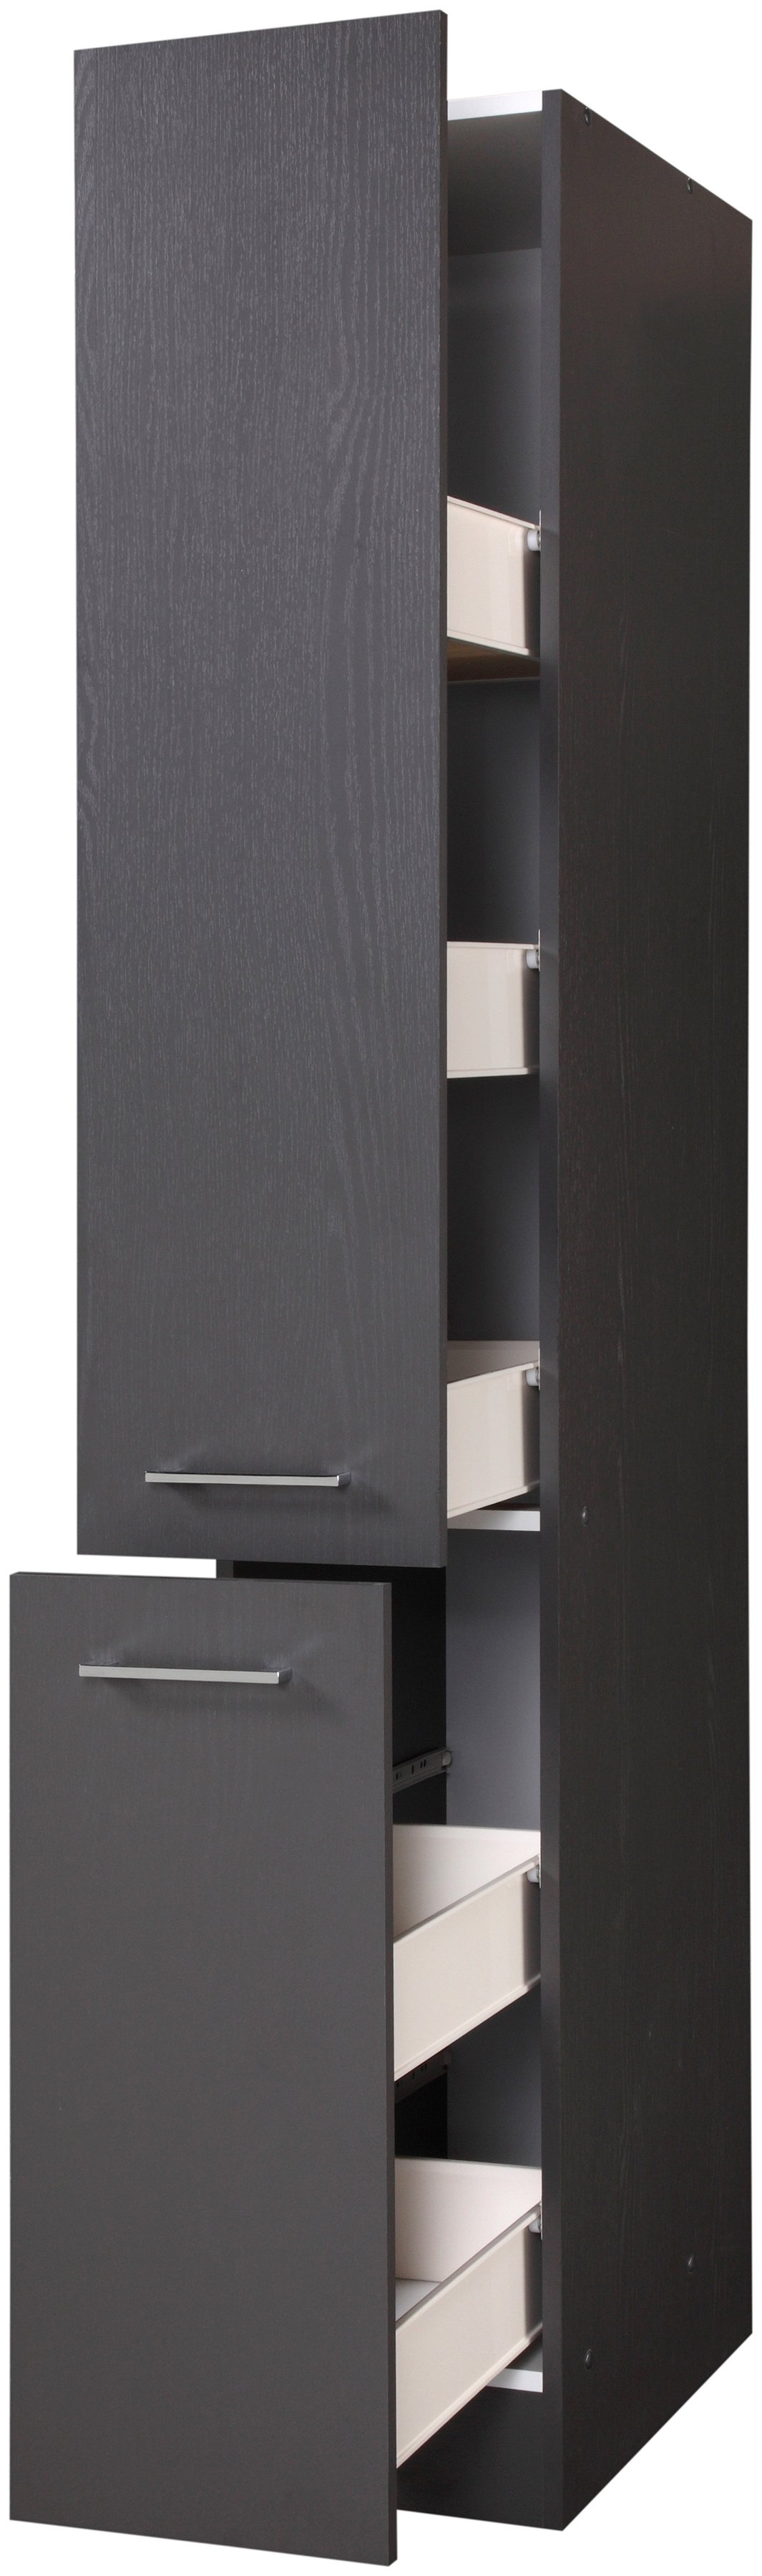 held m bel apothekerskast palma hoogte 200 cm in de online shop otto. Black Bedroom Furniture Sets. Home Design Ideas